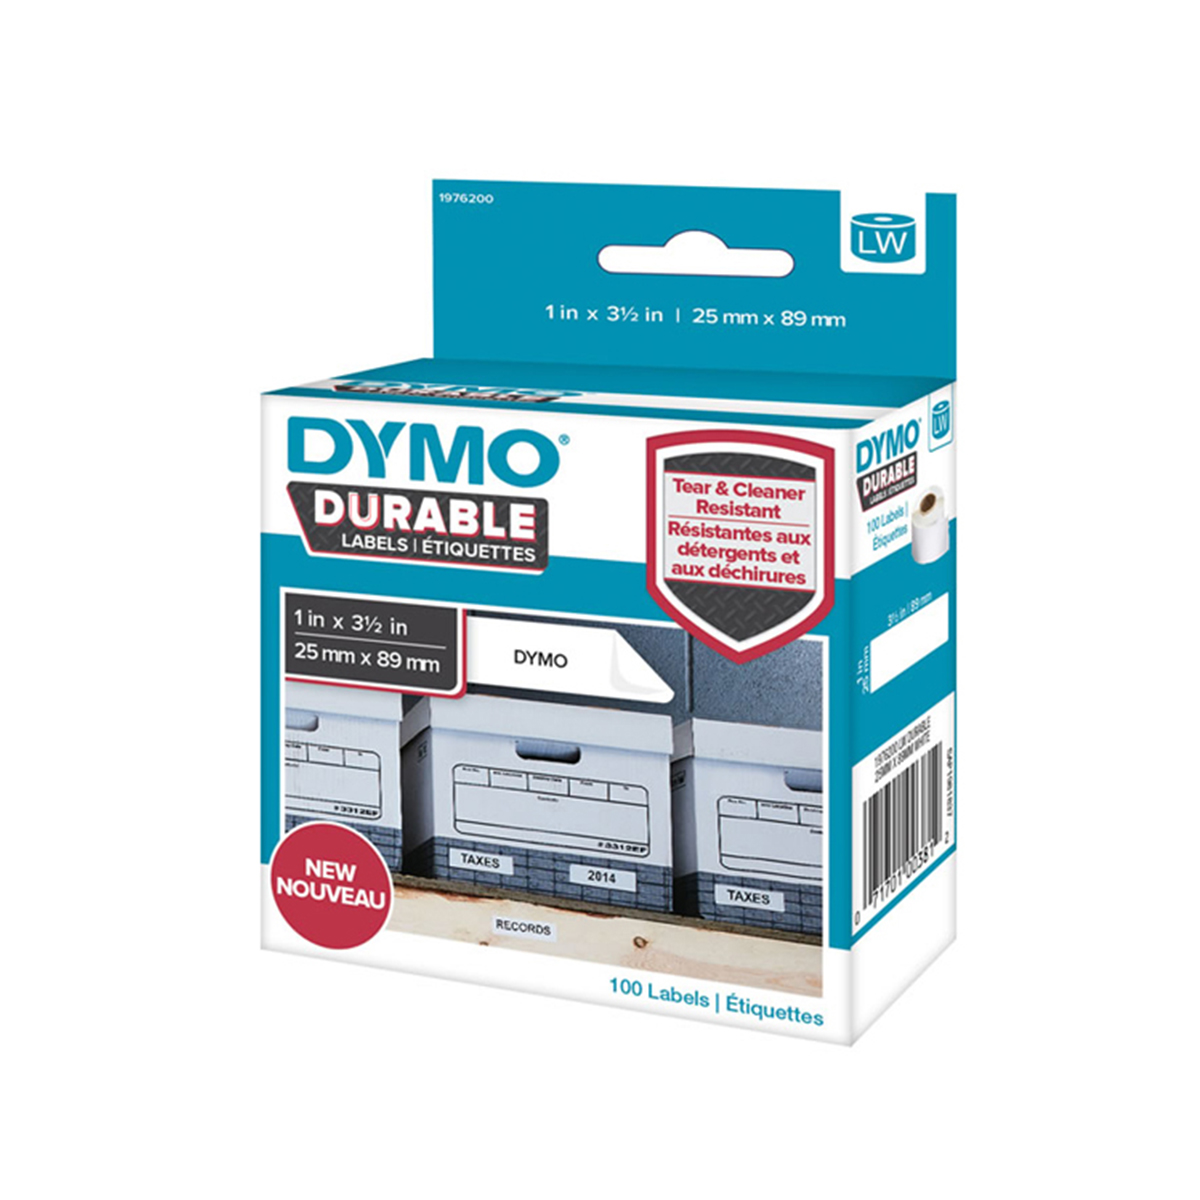 Dymo 1976200 LW Durable Shelving label 25mm x 89mm Black on White